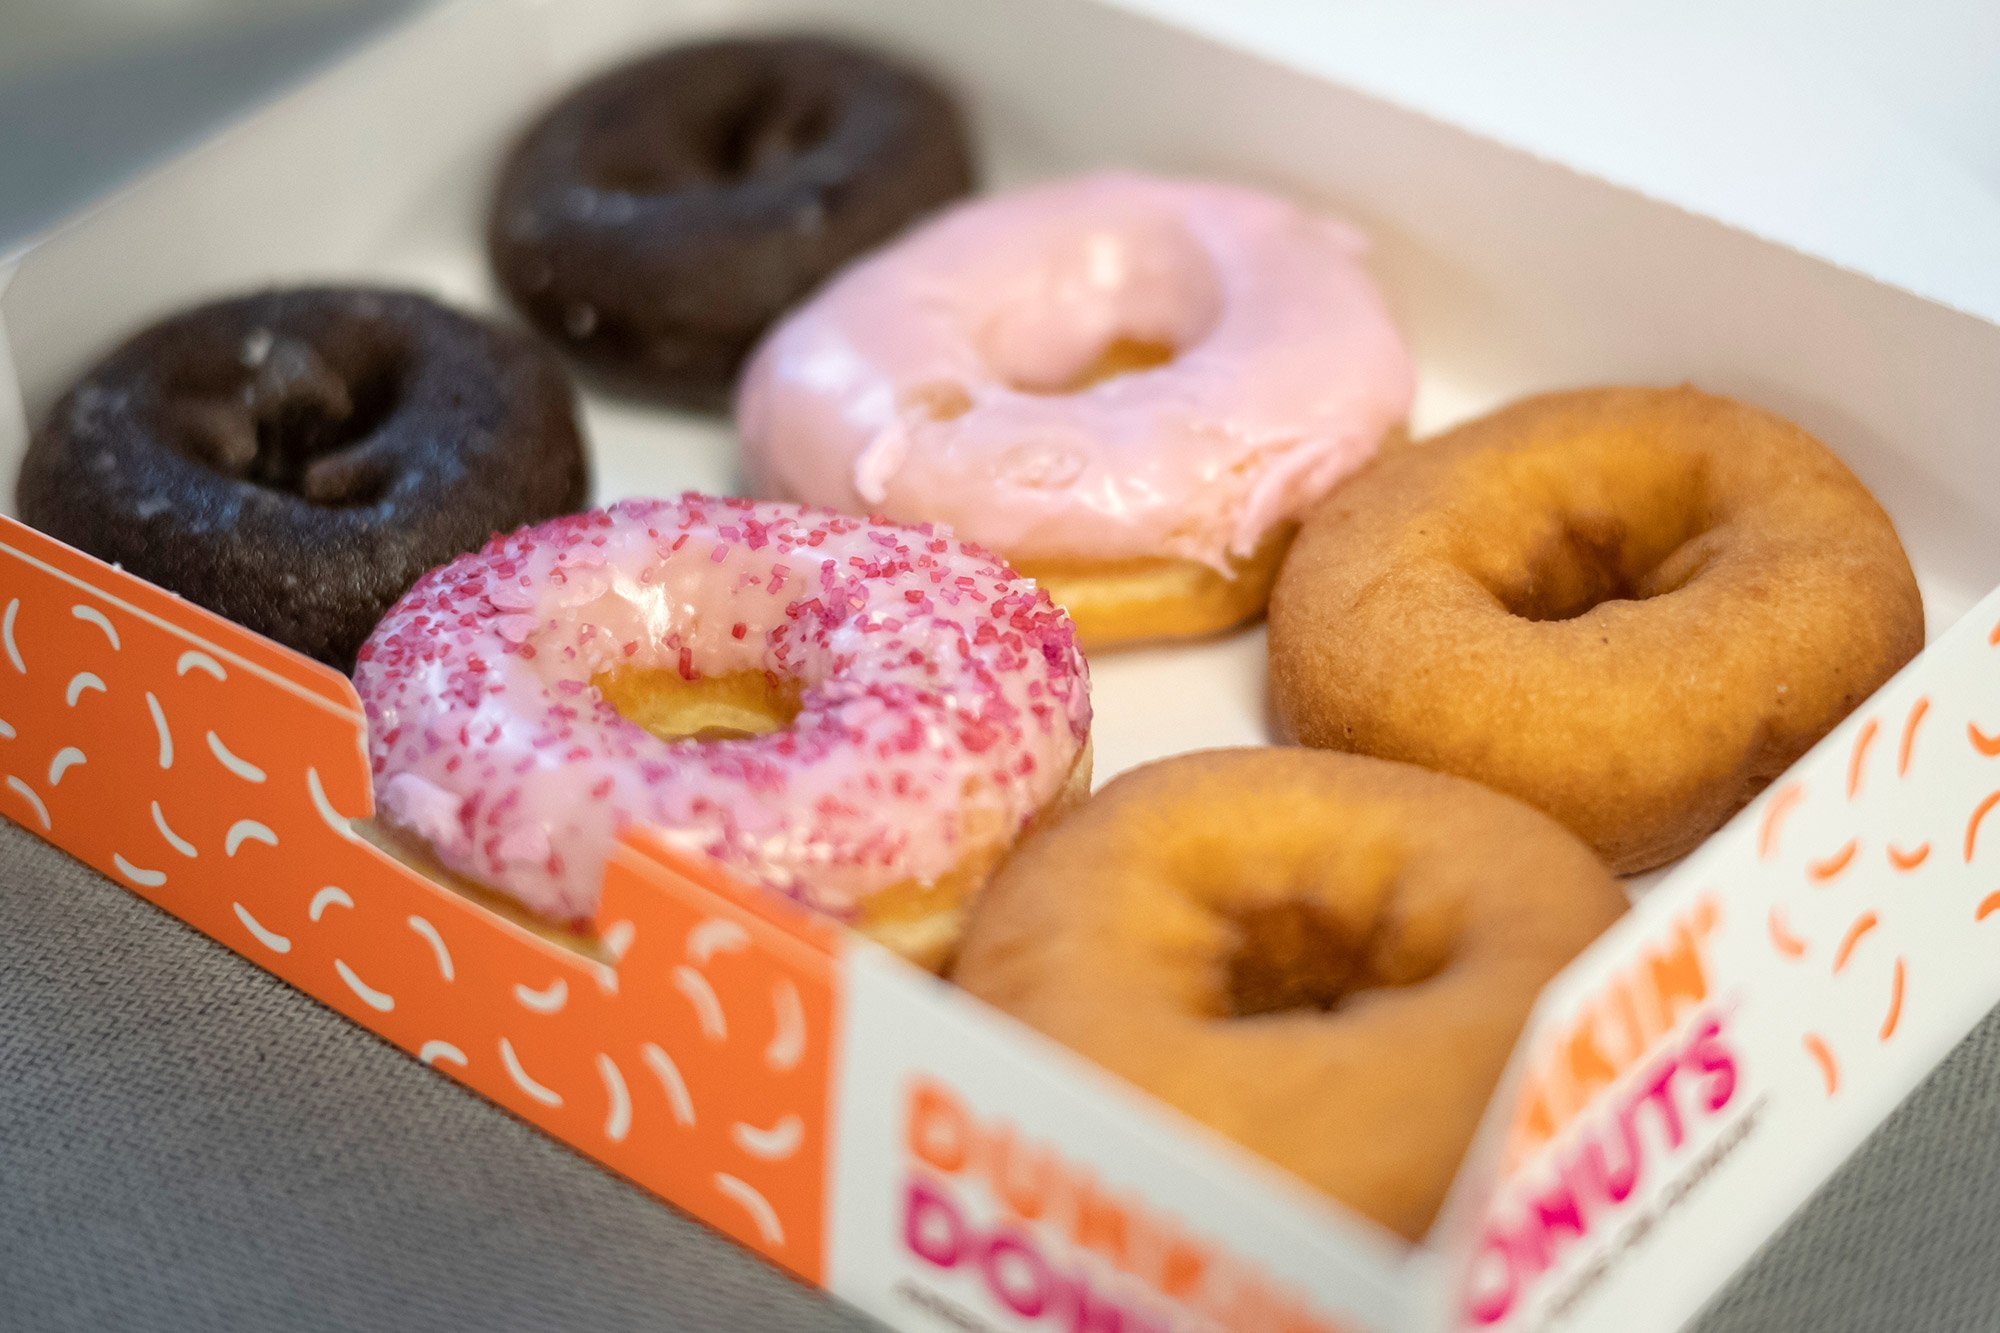 Transgender ex-cashier sues Dunkin' Donuts, saying managers let coworkers and patrons harass her, then fired her